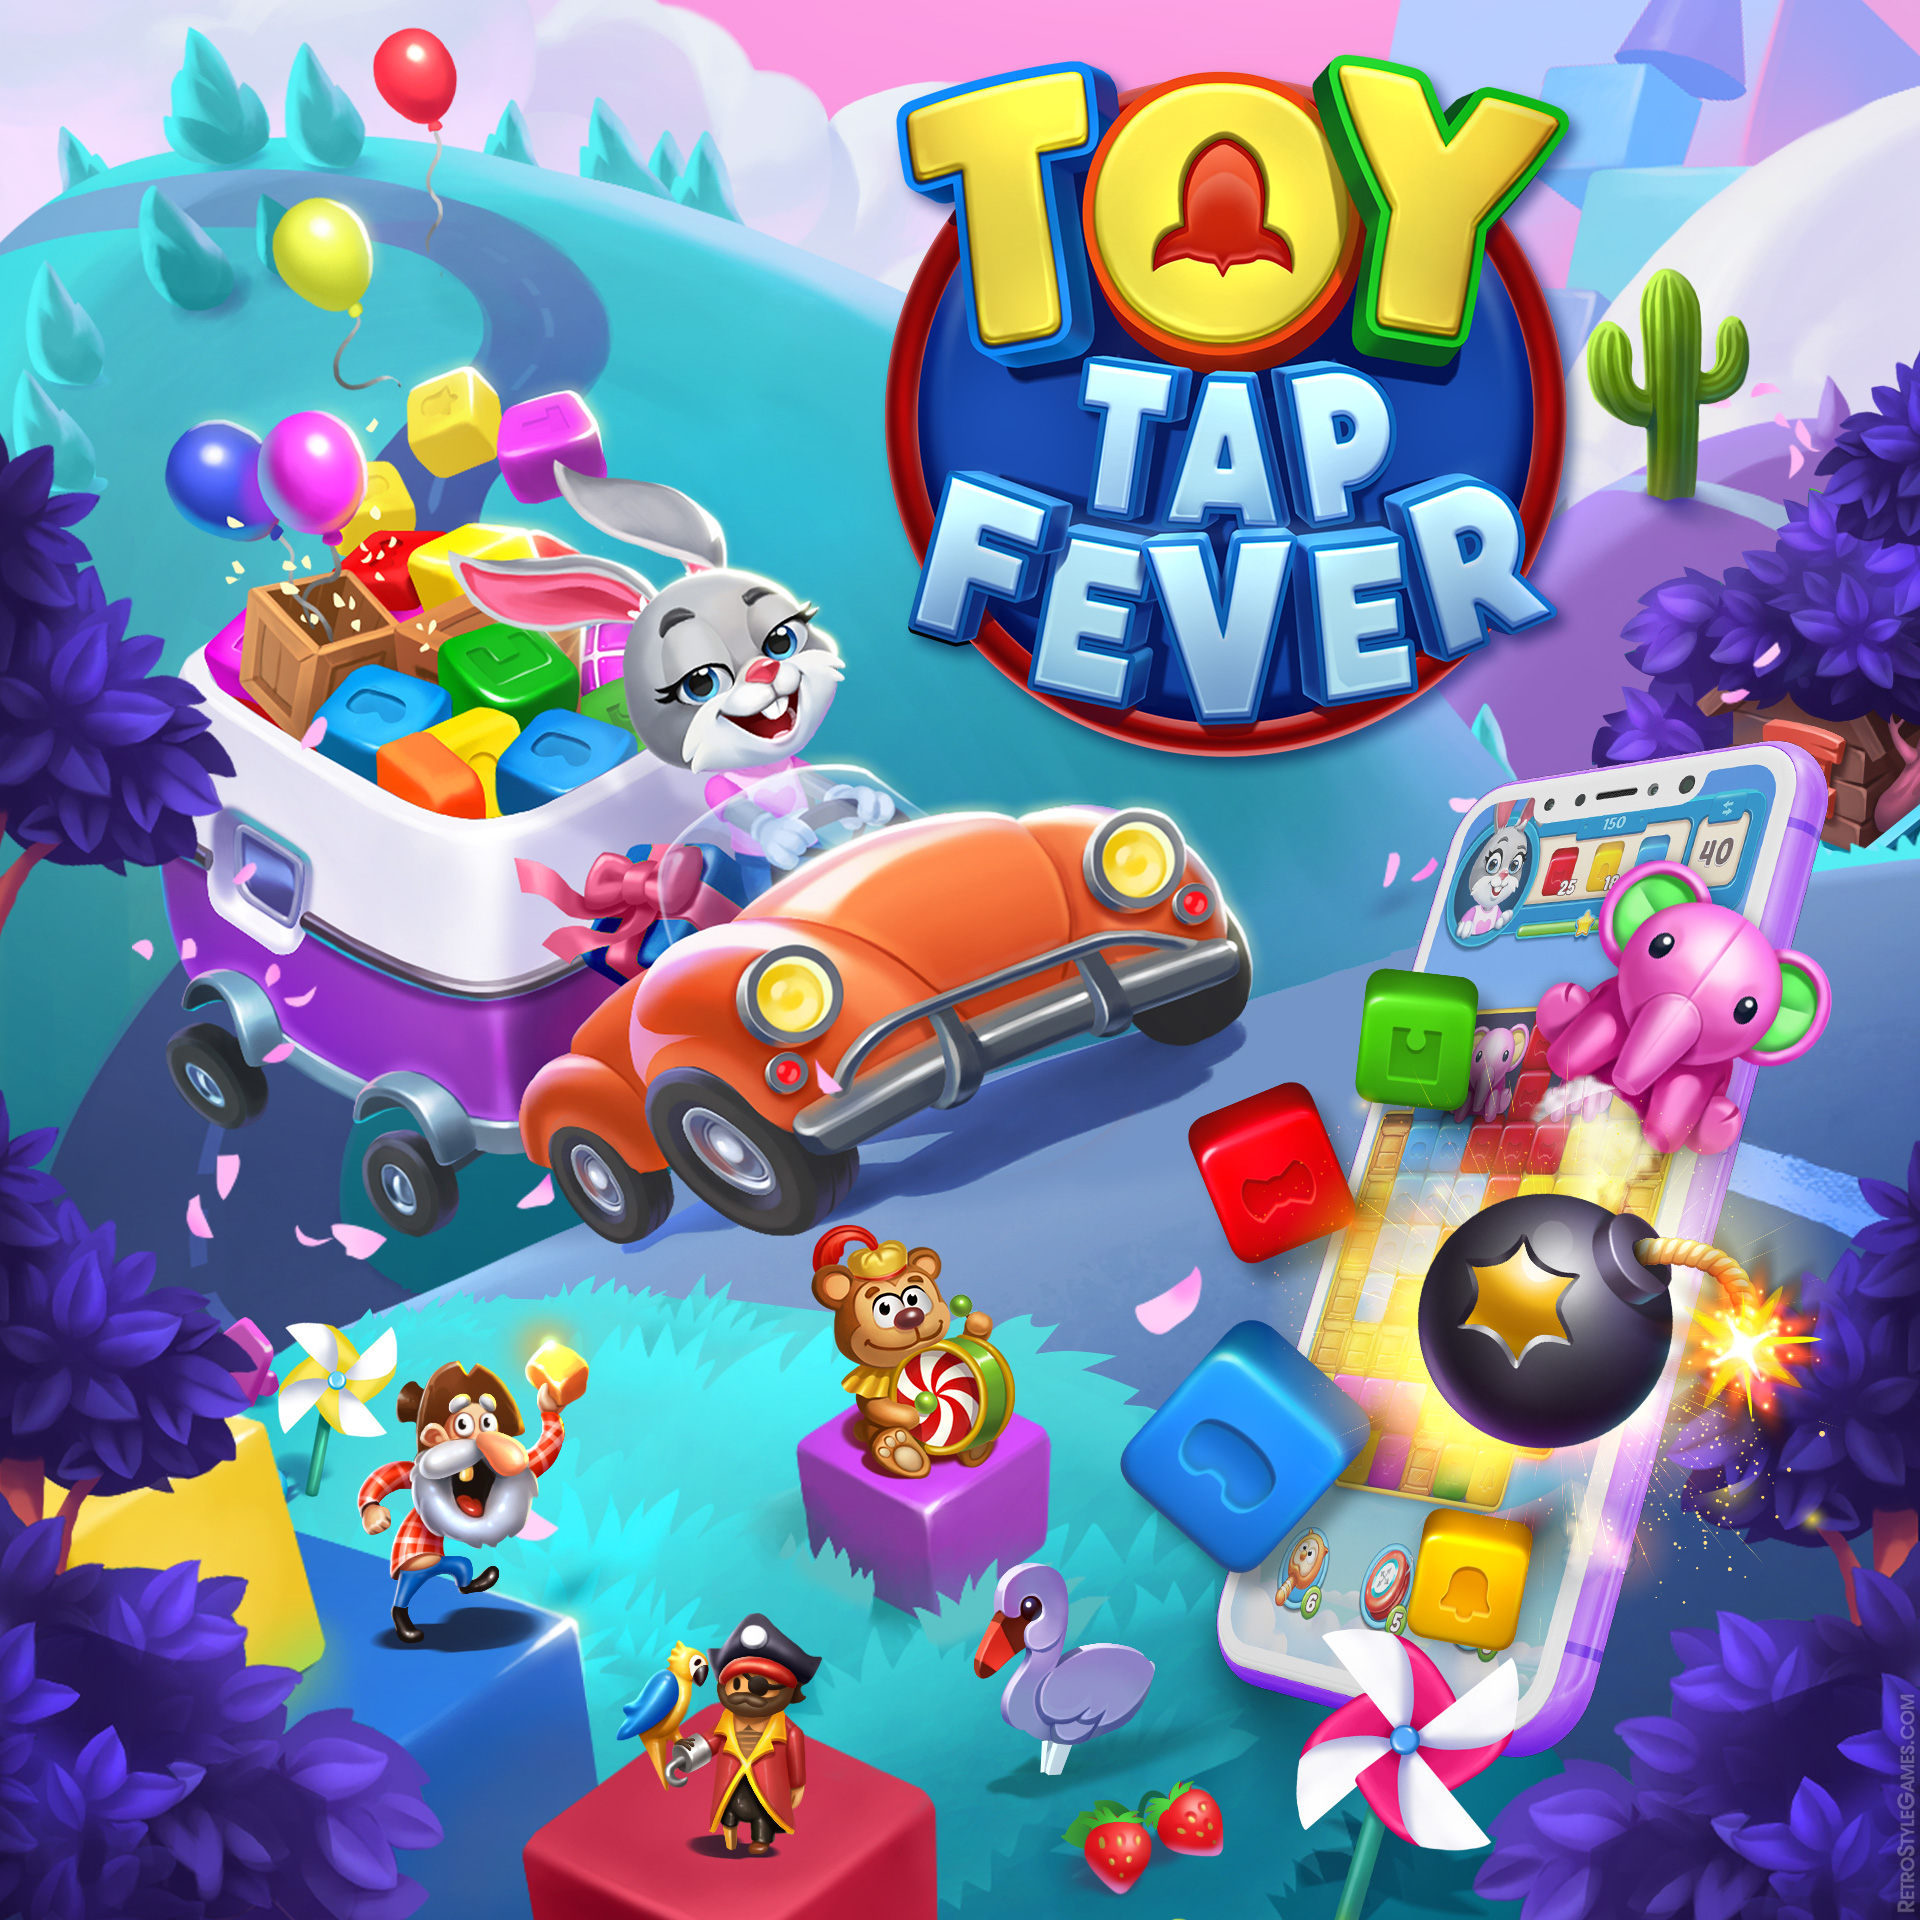 Toy Tap Fever 2D Homepage Gaming Logo Match-3